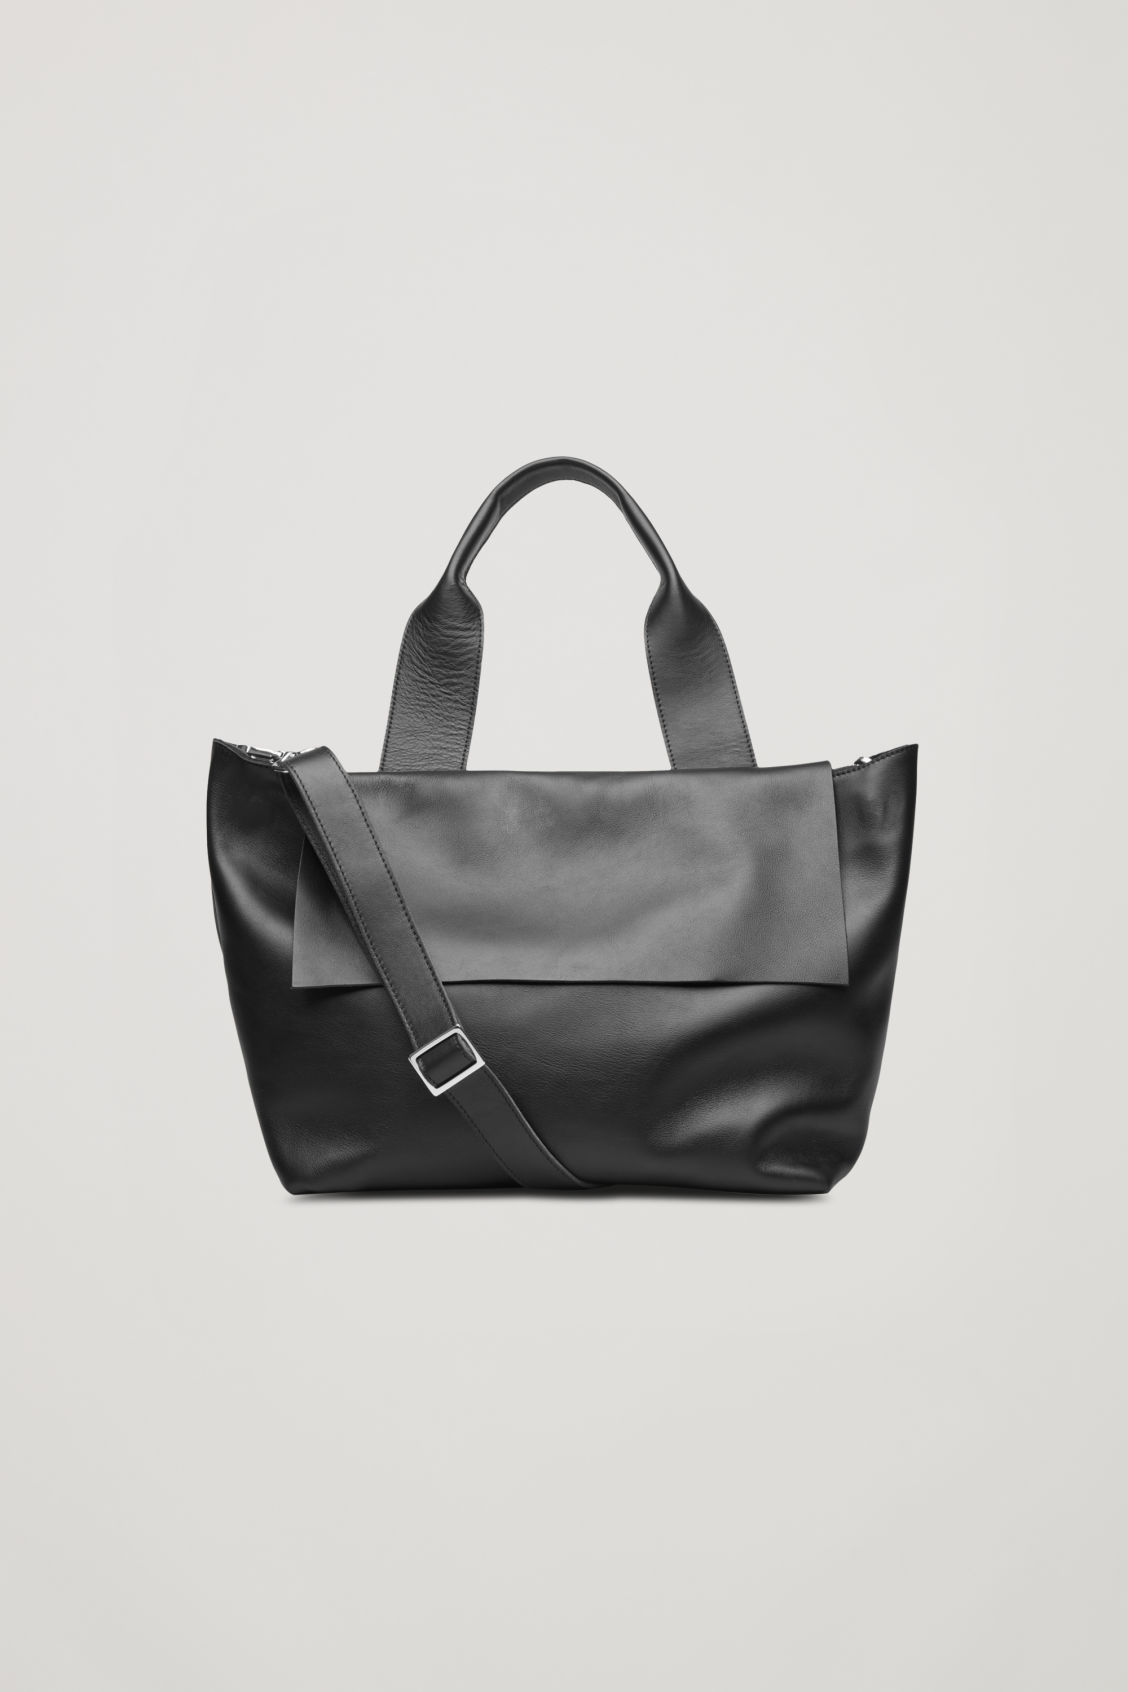 a69fdc1d33f0 FOLDED LEATHER TOTE BAG - Black - Tote bags - COS